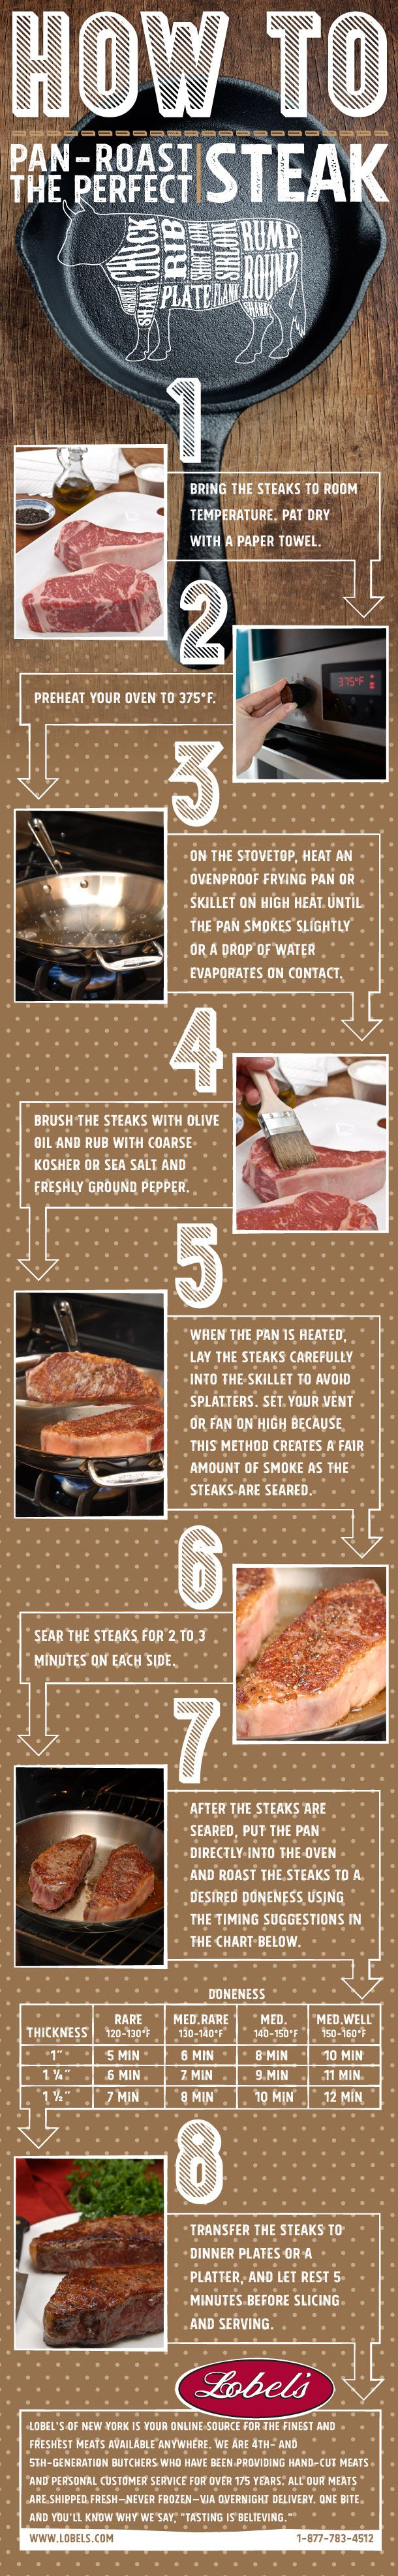 How To: Pan Roast a Steak - Infographic Guide